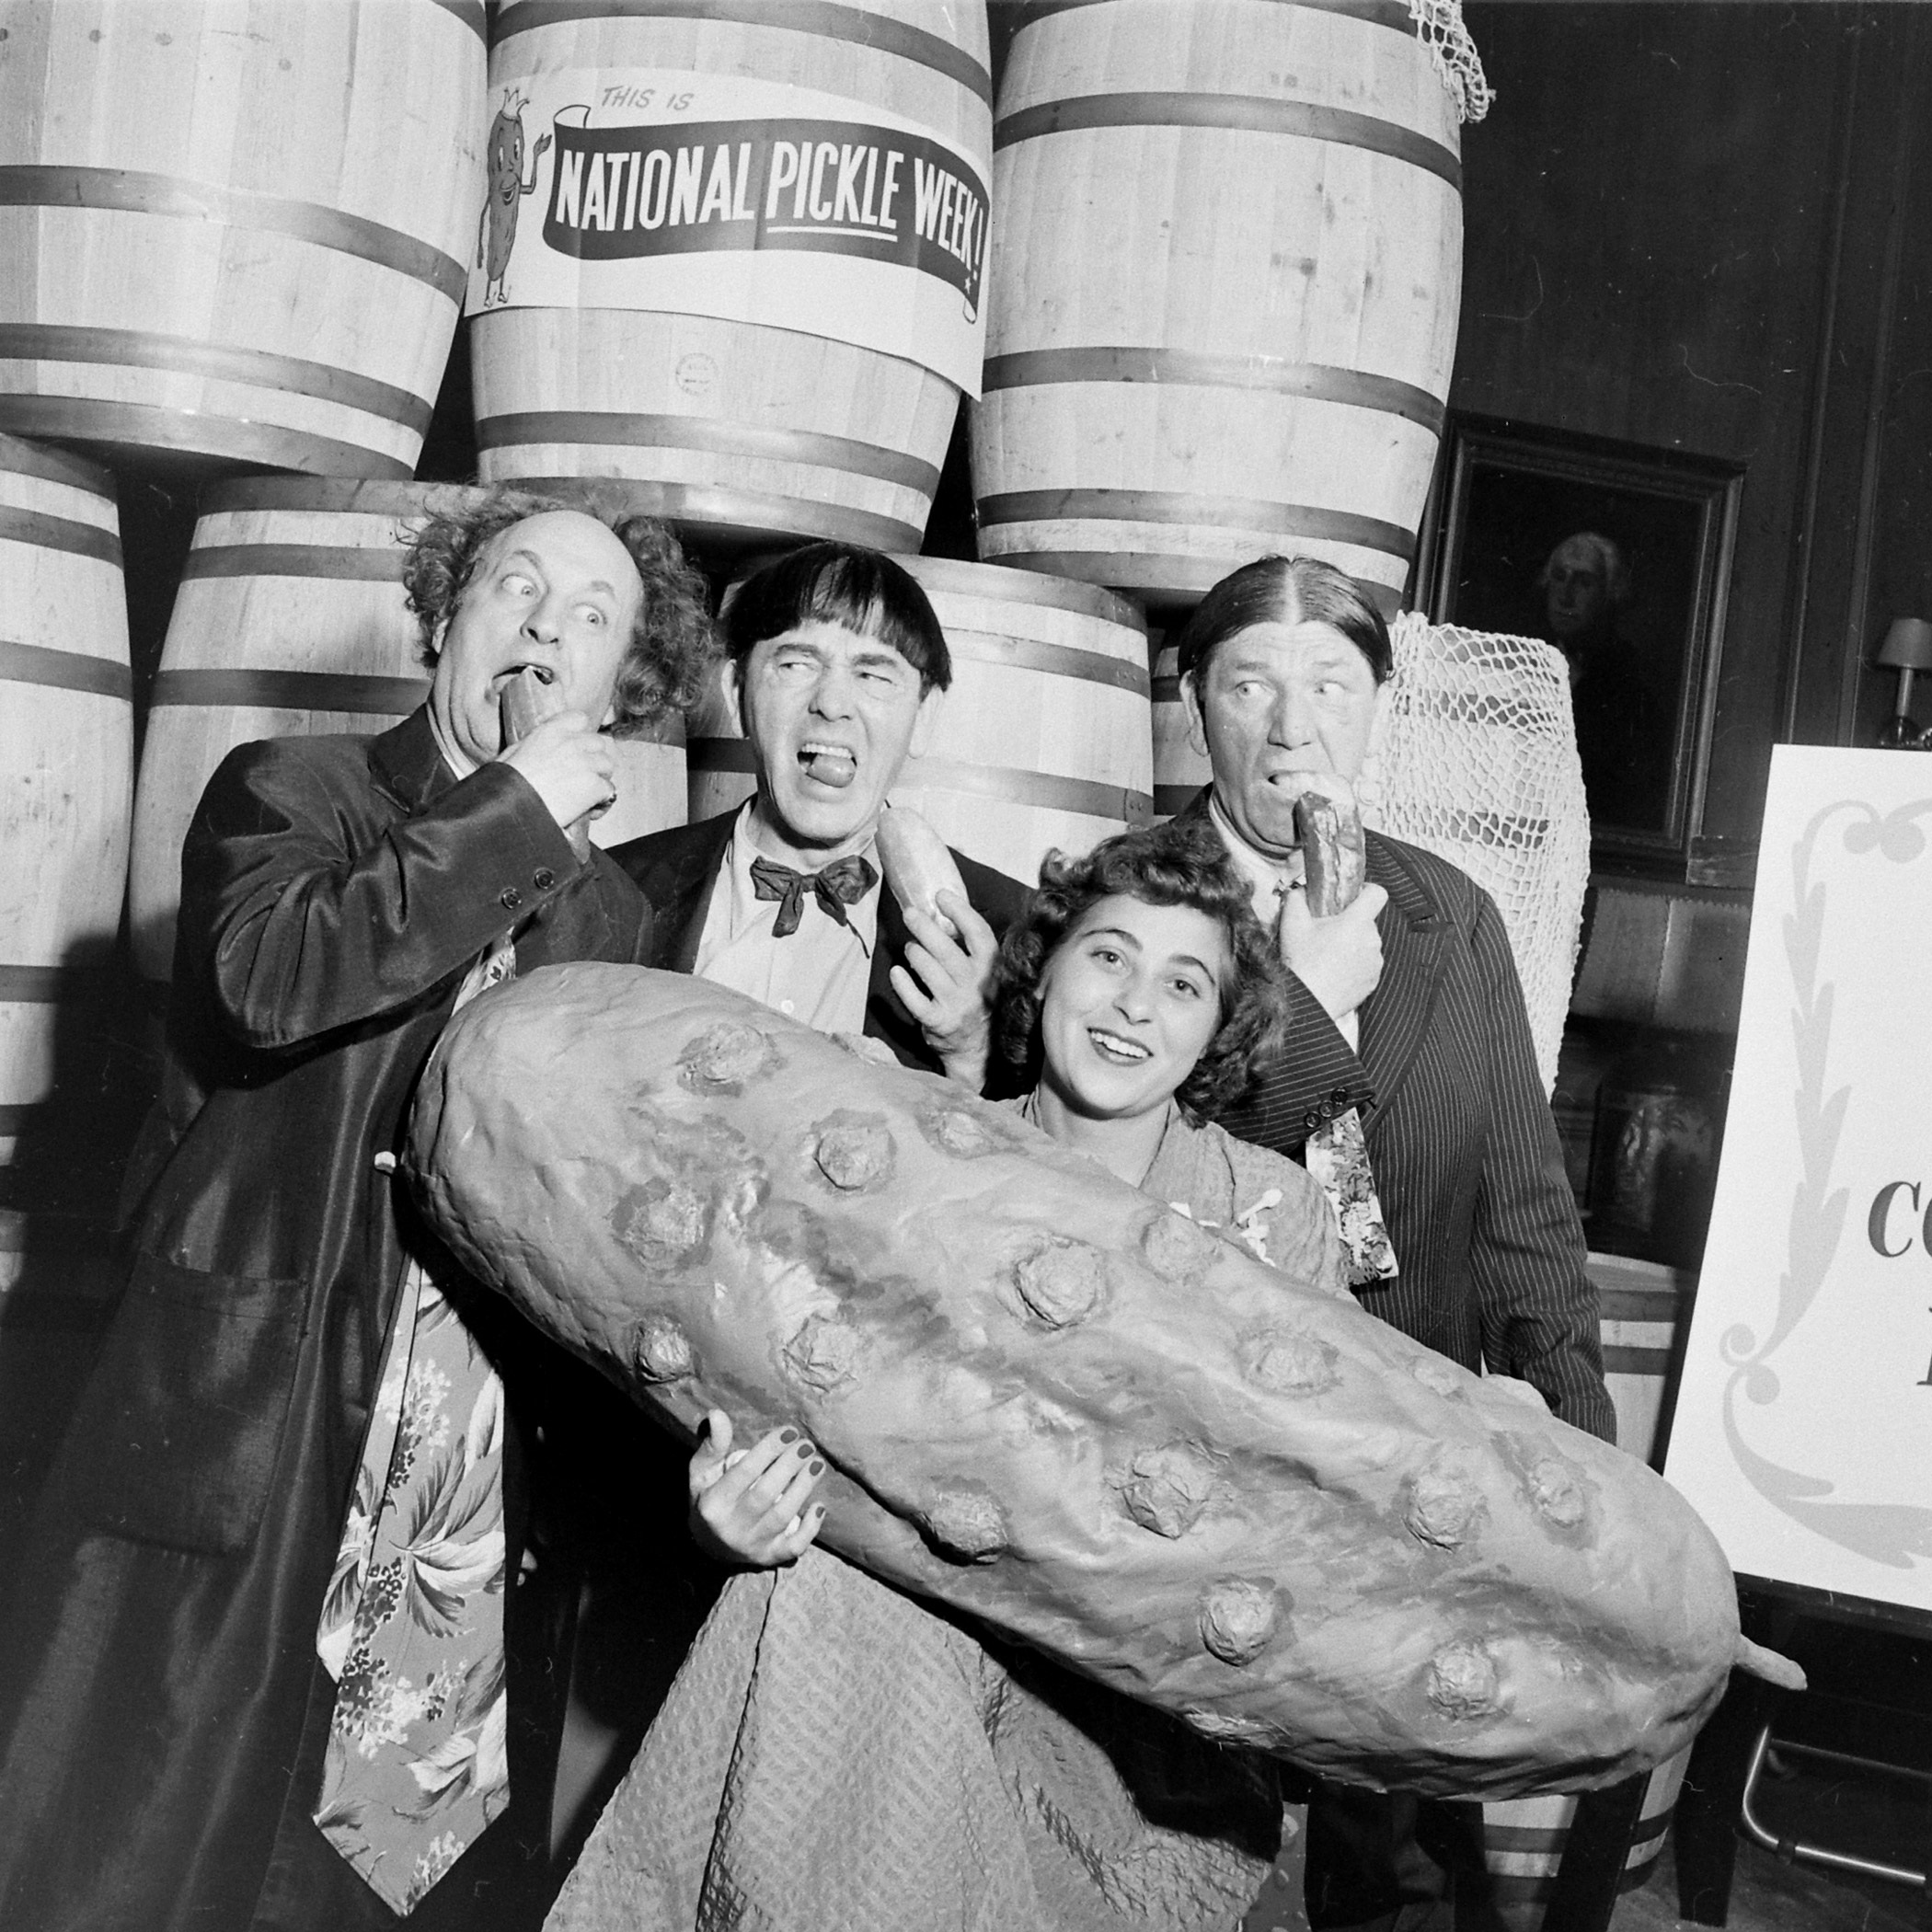 National Pickle Week, 1949. With the Three Stooges.